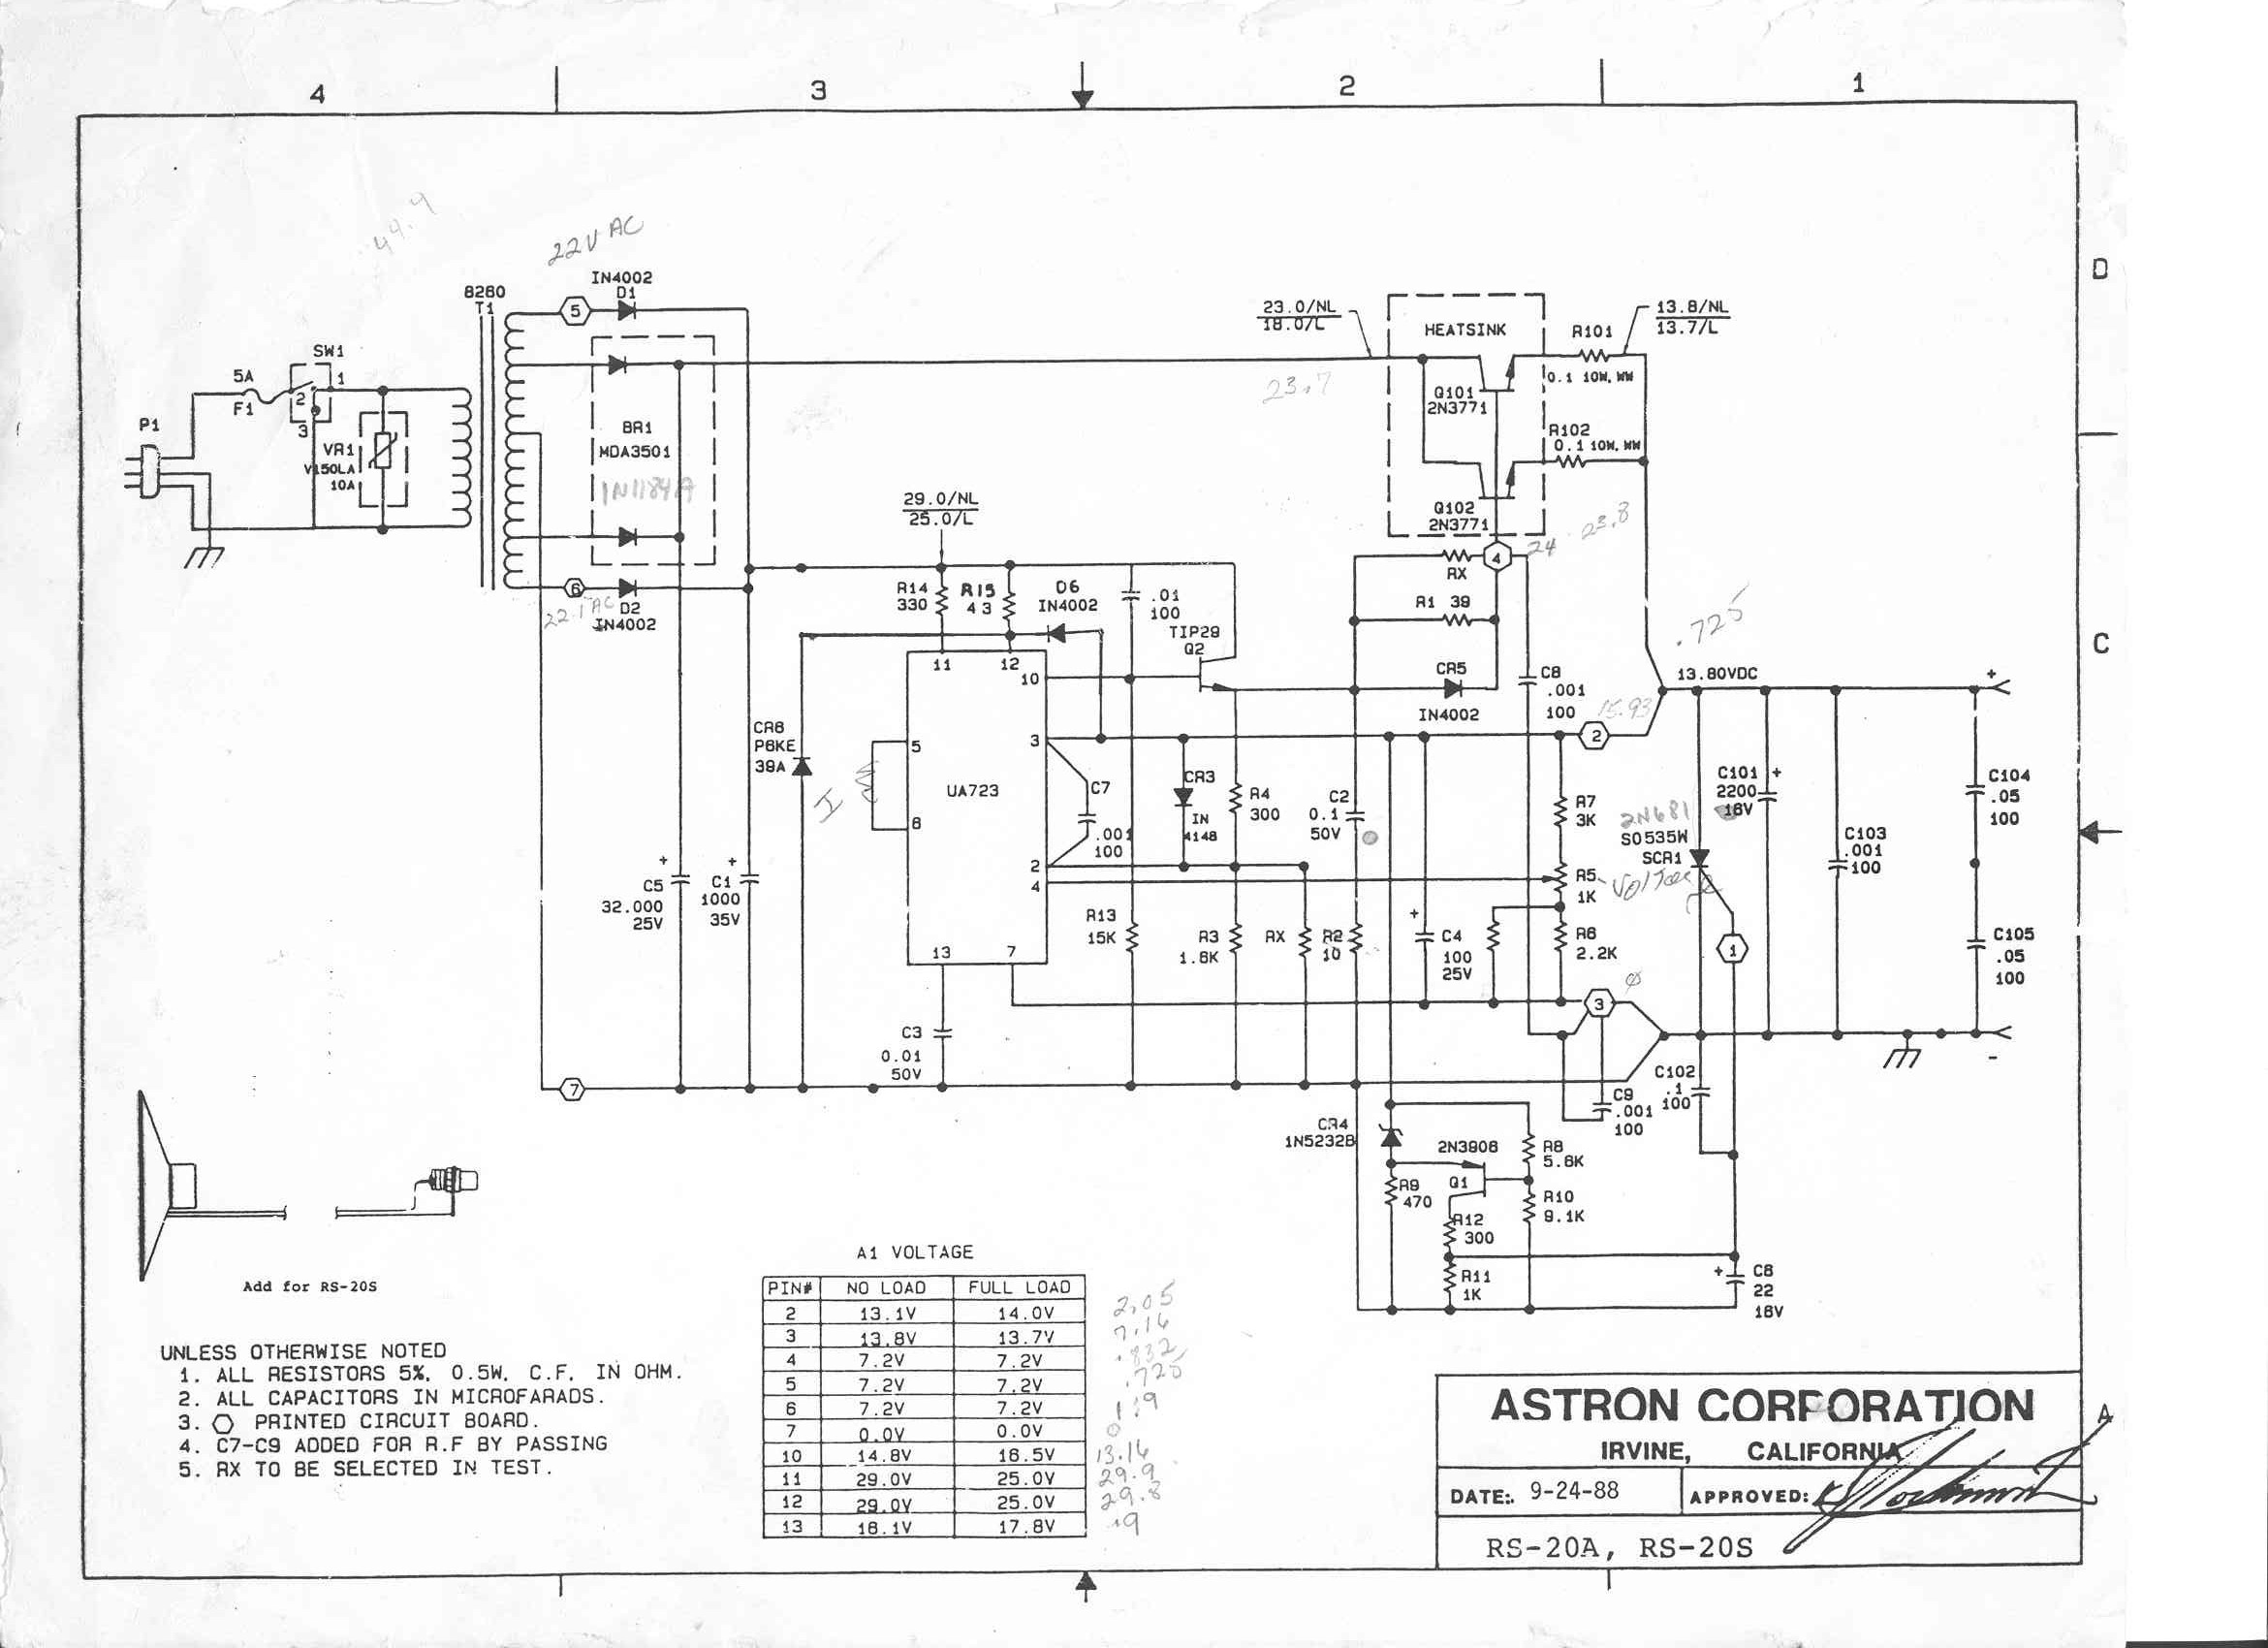 Gy6 Headlight Wiring Diagram also Vw Passat Ccm Wiring Diagram as well Vw Starters Generators Alternators furthermore 0327 furthermore 2007 Mountaineer Wiring Diagrams Abs. on wiring an amp and sub